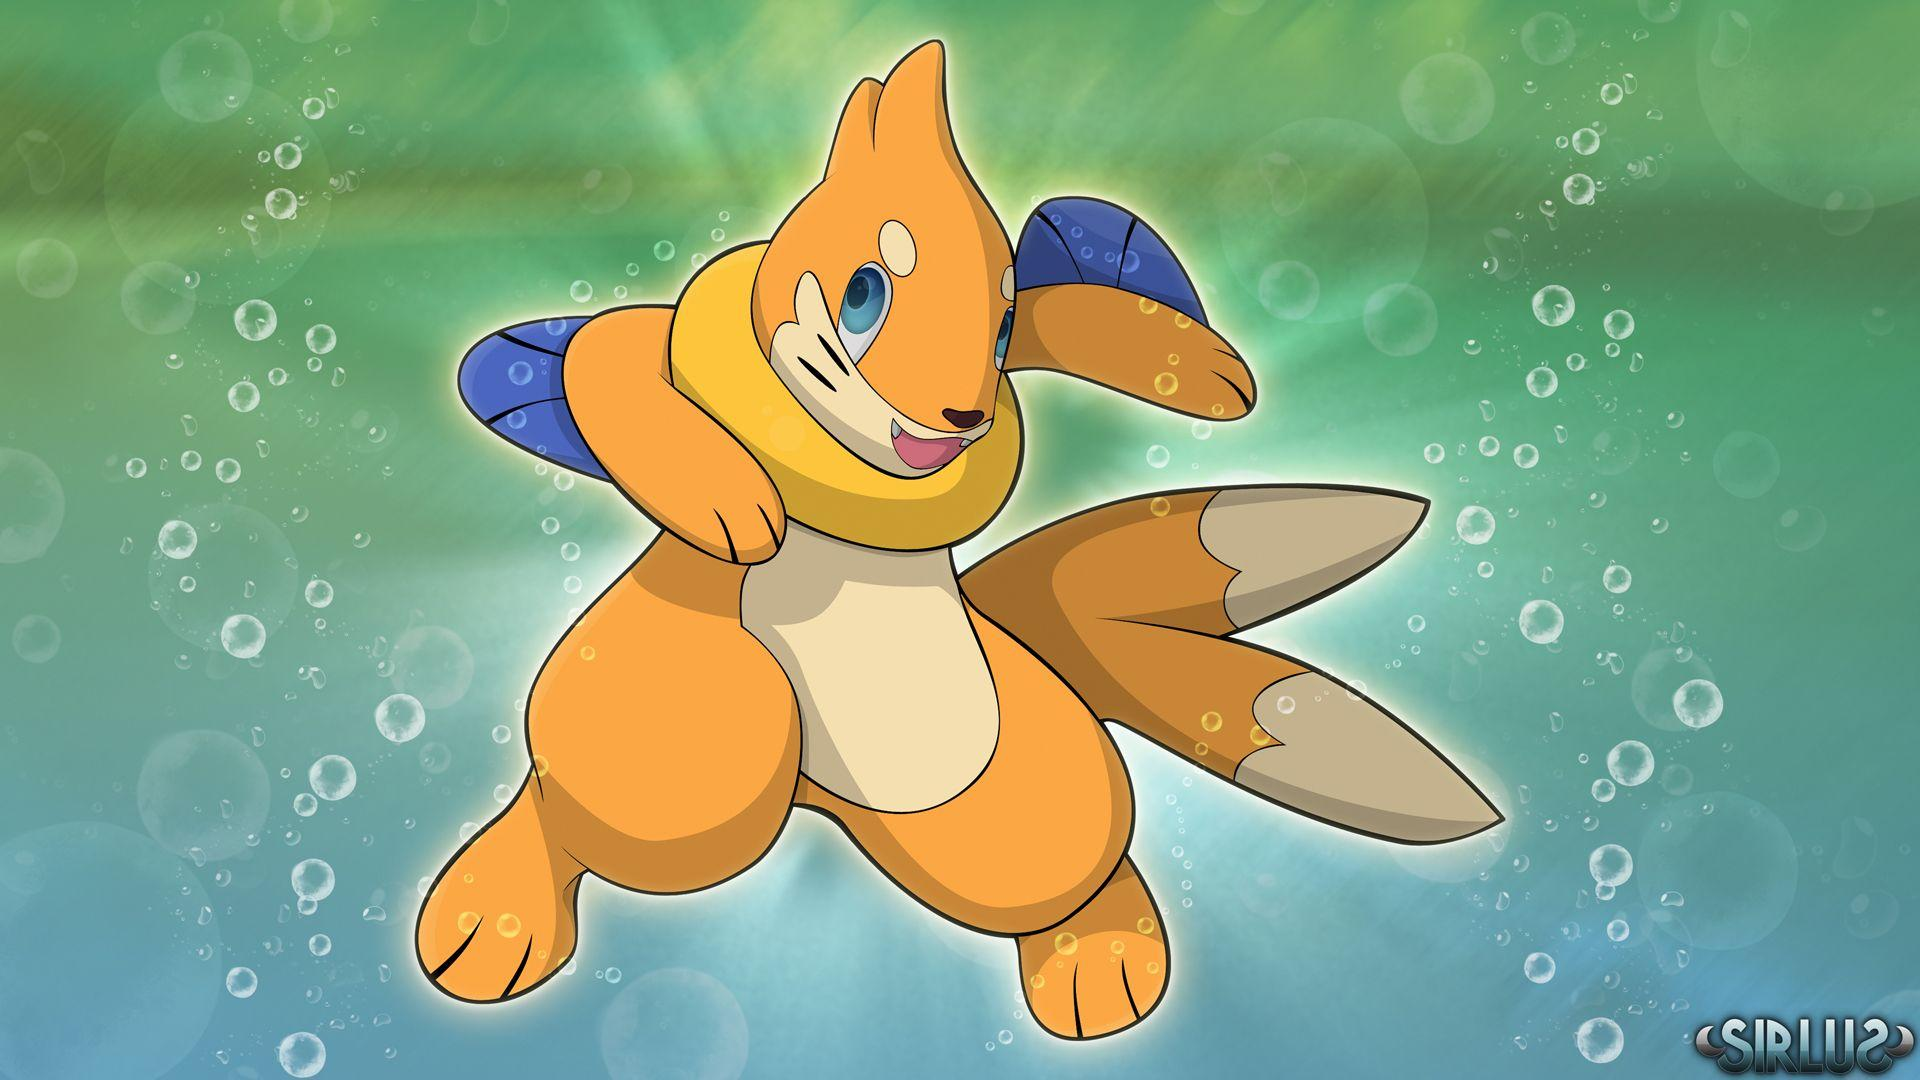 Buizel by RamiroMaldini on DeviantArt